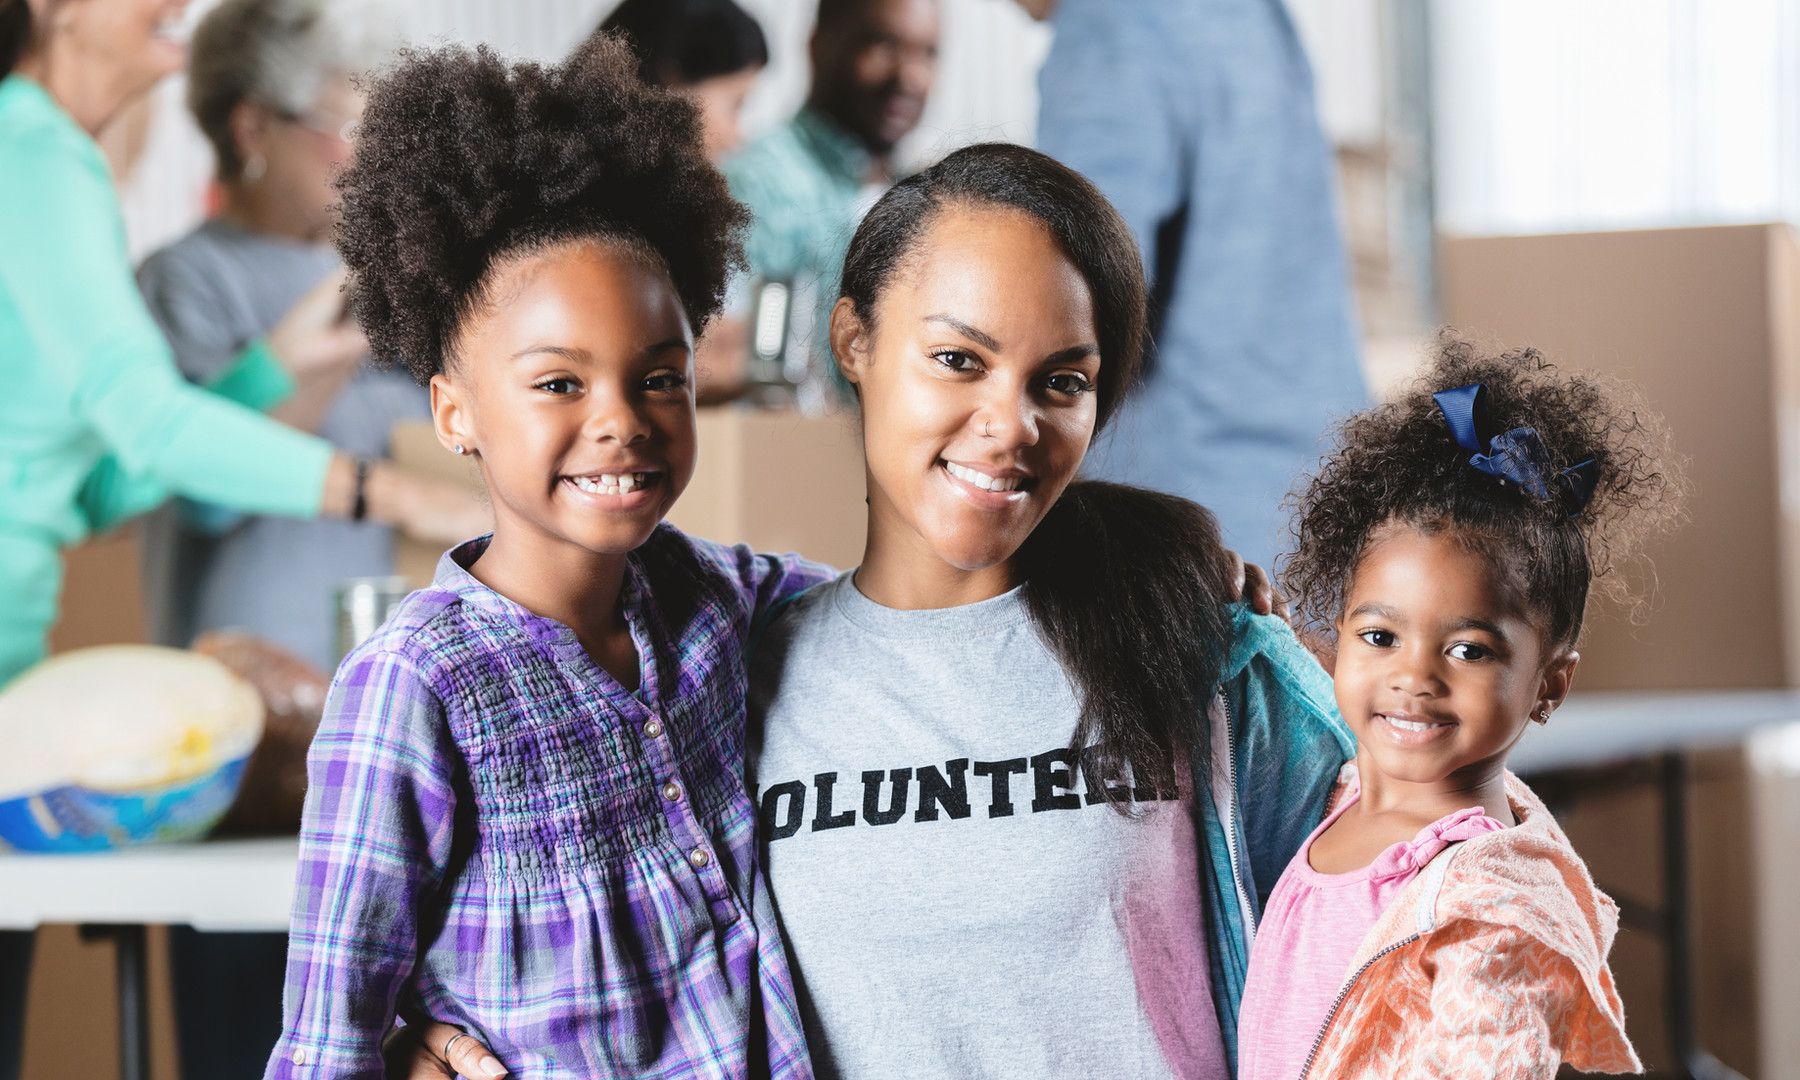 What's better than volunteering and children?